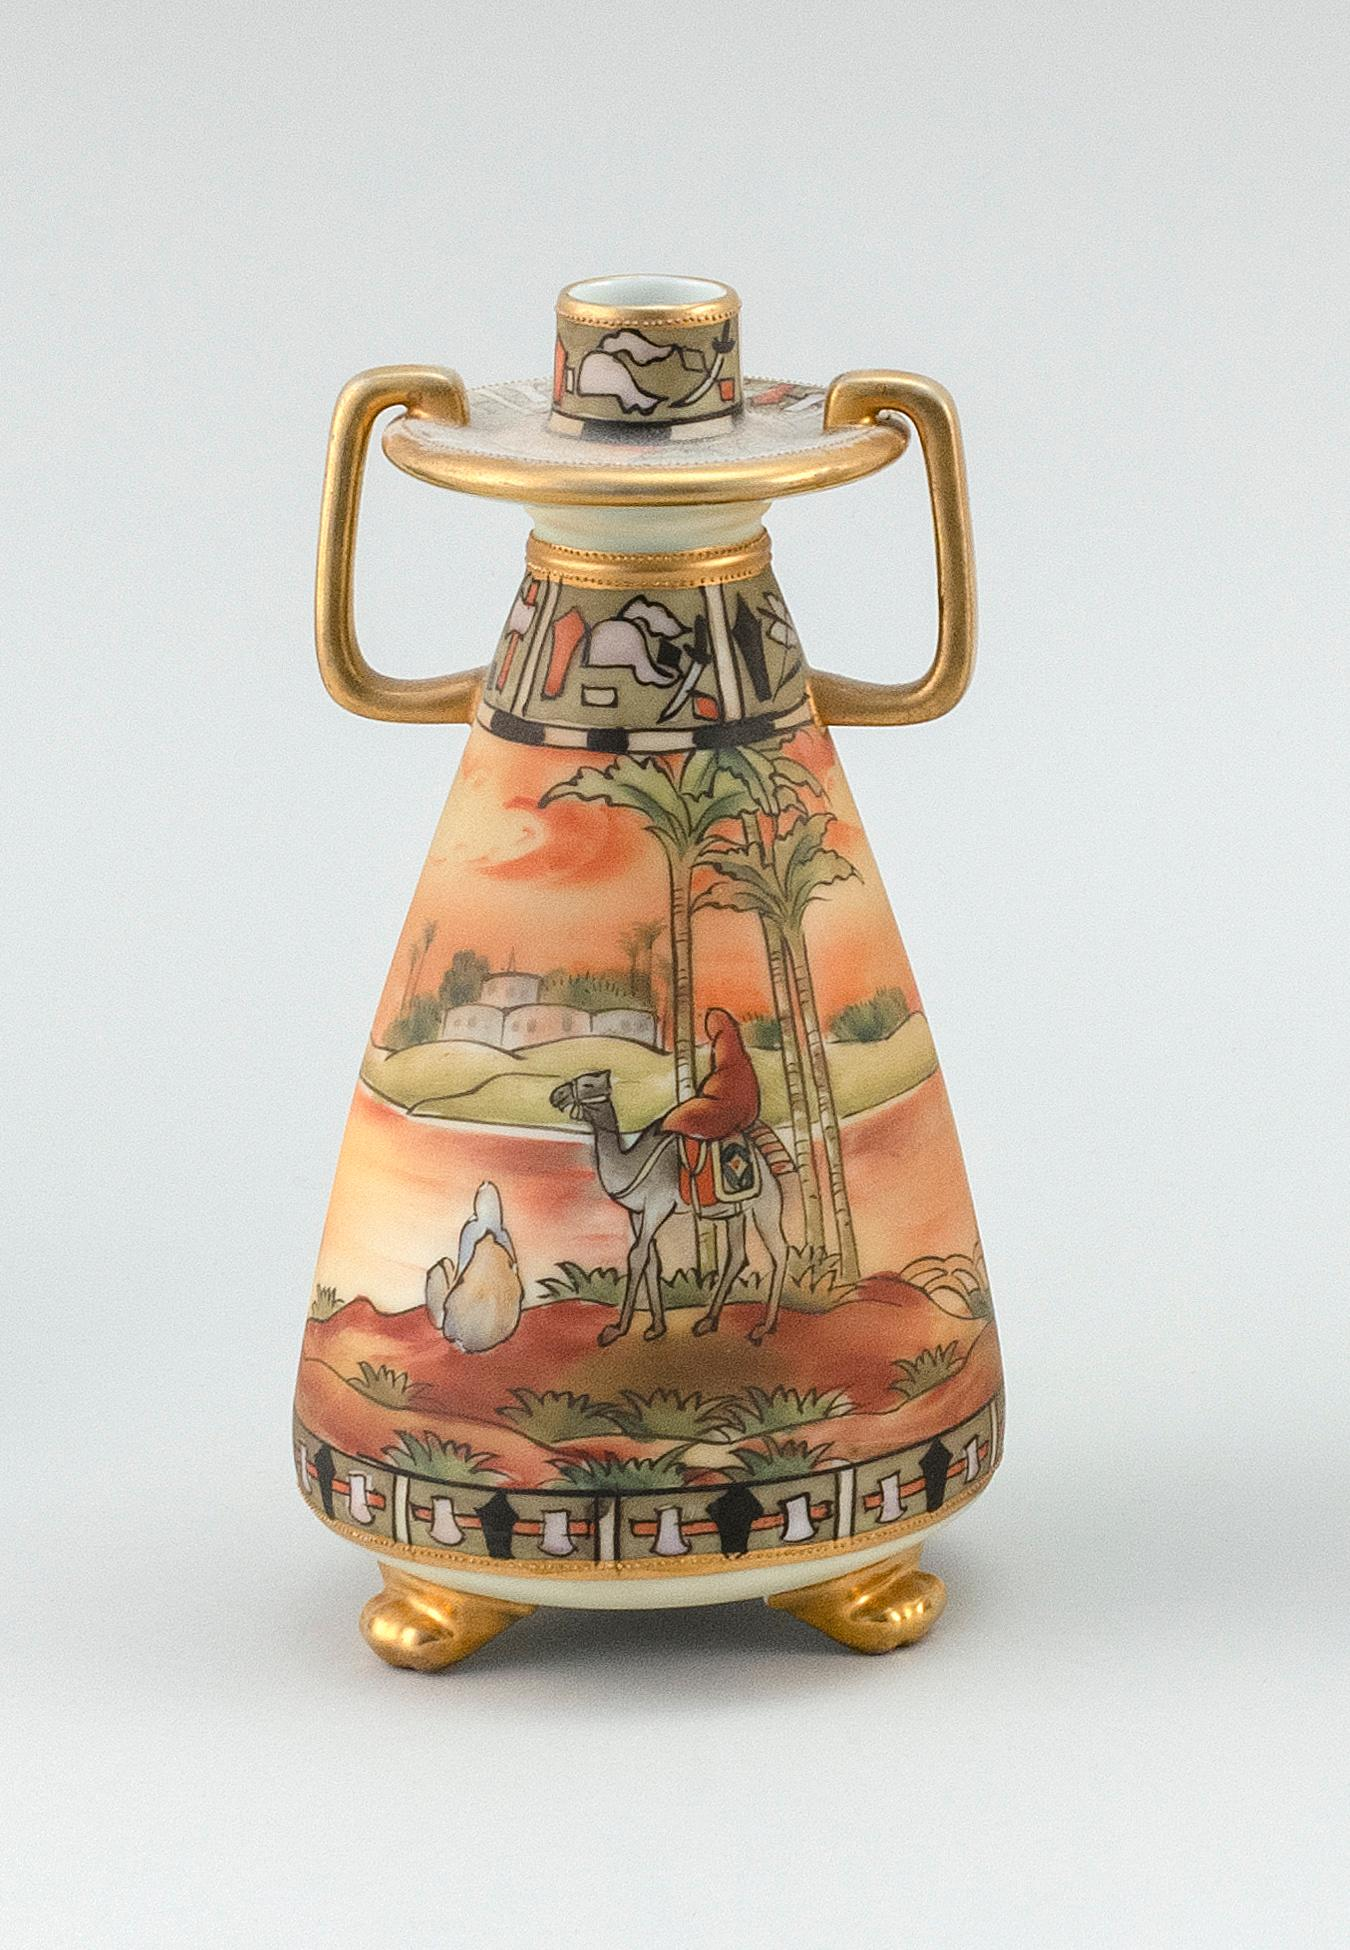 """NIPPON PORCELAIN CANDLESTICK In tripod conical form, with Egyptian landscape decoration. Van Patten #47 mark on base. Height 7.7""""."""